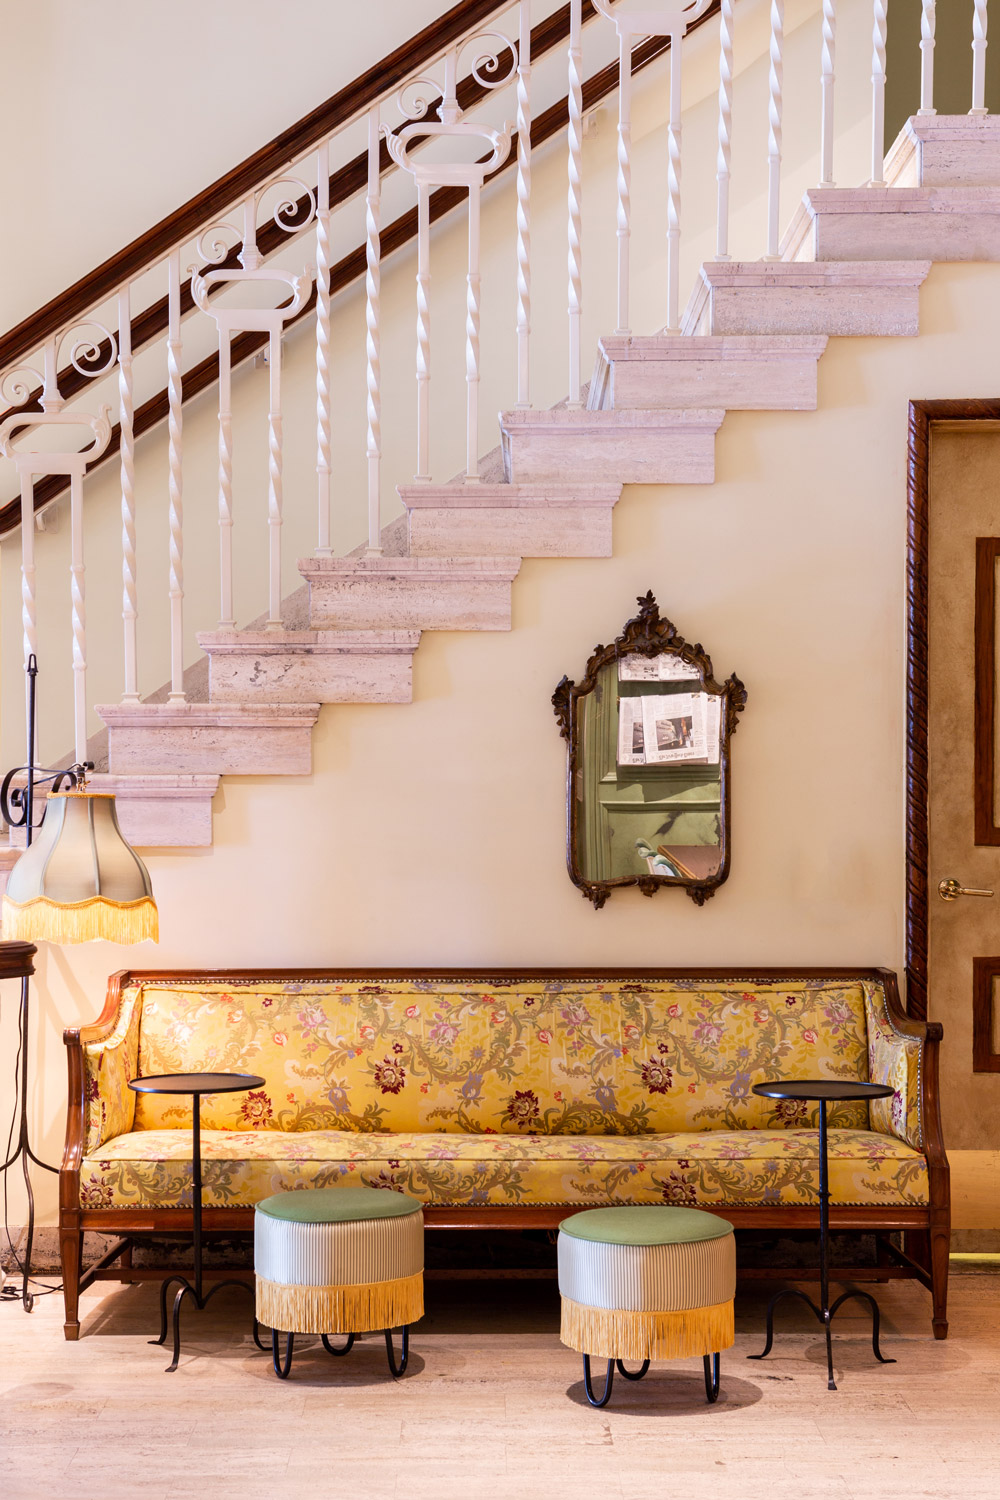 The Siren's lobby is an 11,000-square-foot frenzy of Renaissance Revival architectural detail, custom-upholstered sofas and settees, lavishly adorned 19th-century Italian mirrors, modernist conference tables, and neo-futurist pedestal side chairs.